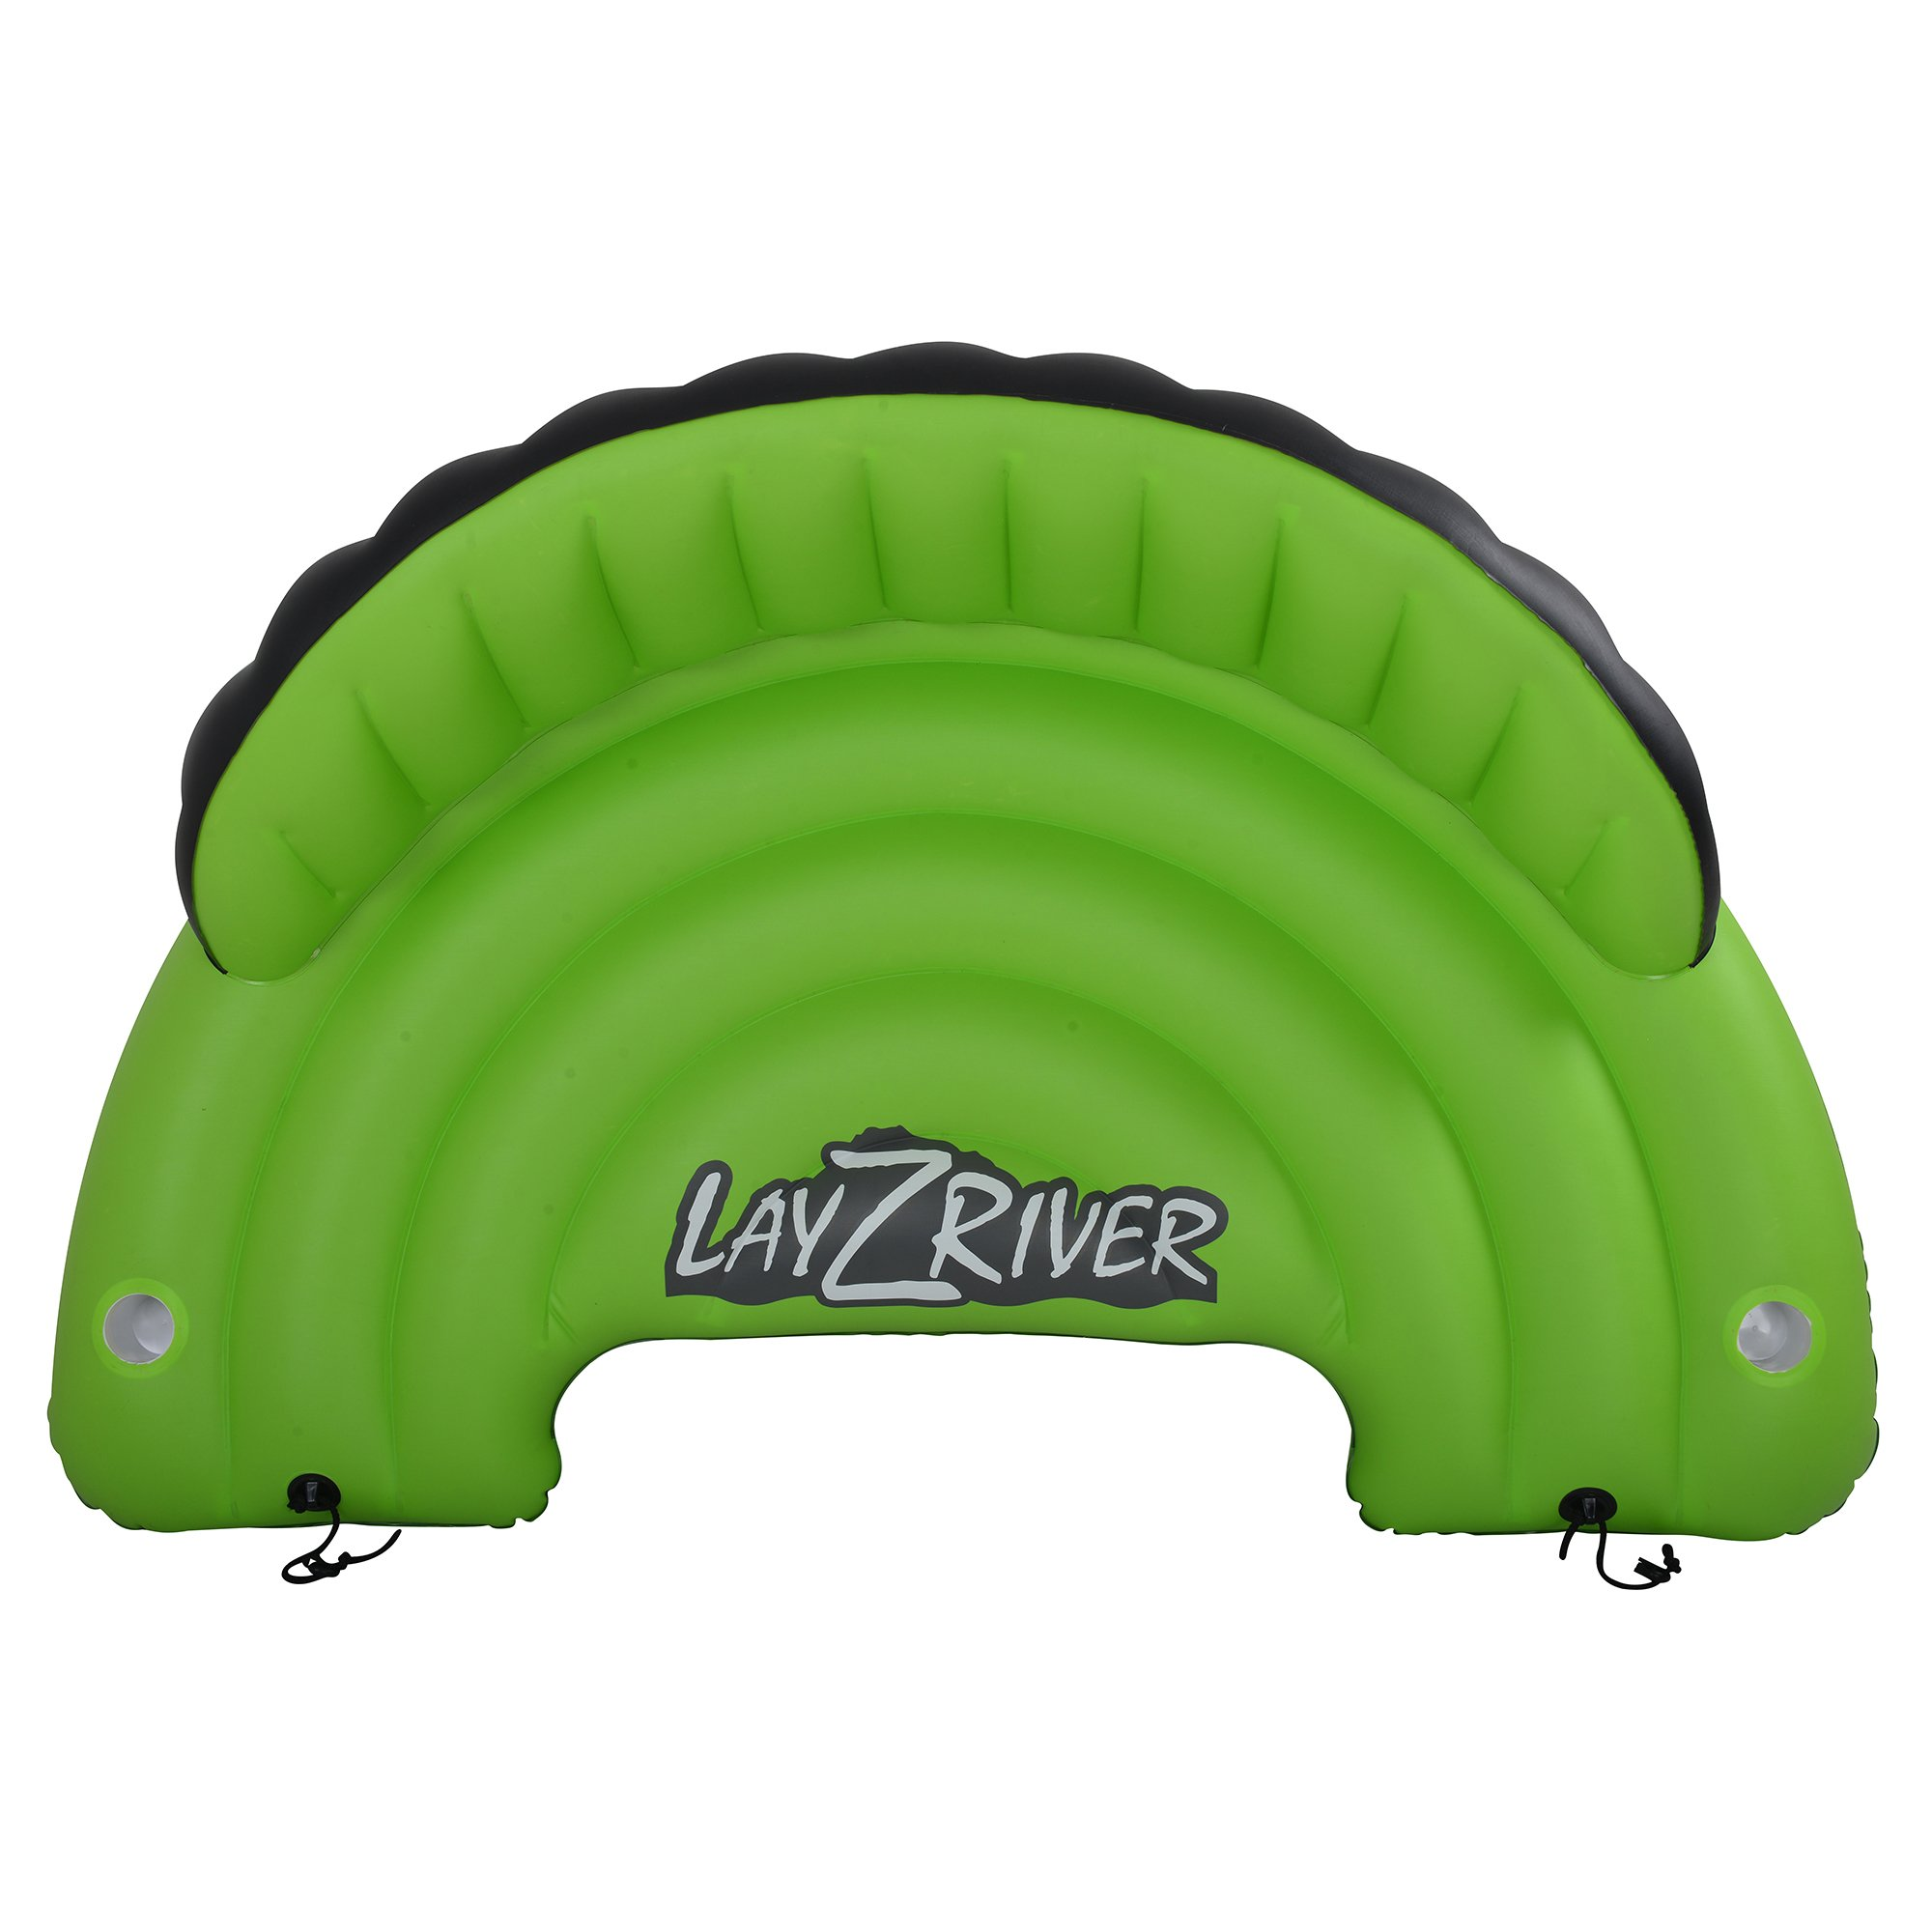 Blue Wave Sports Lay-Z-River Inflatable Sofa, Green/Black by Blue Wave Sports (Image #2)